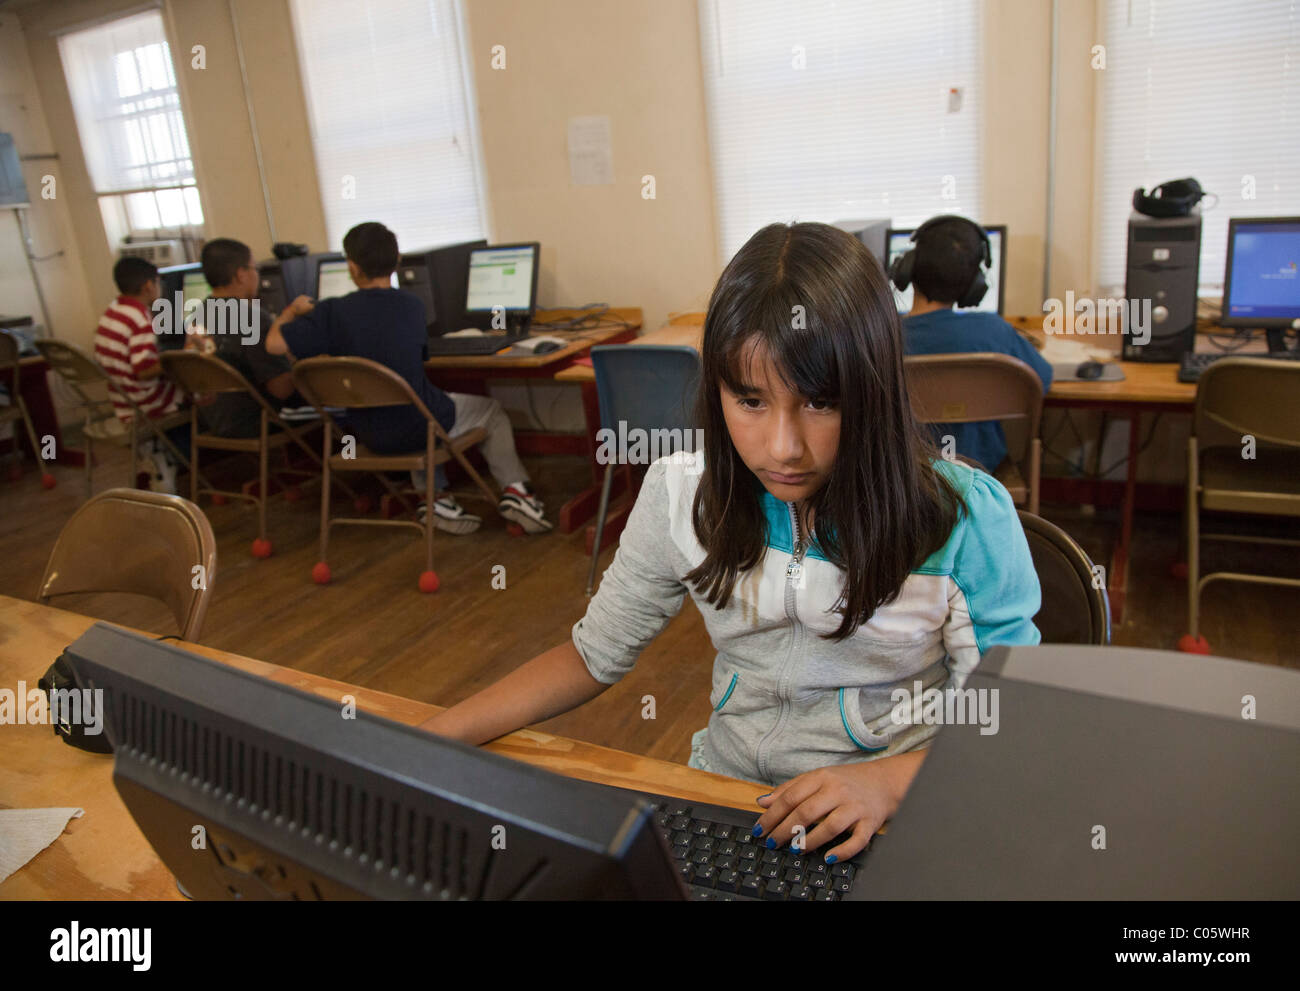 Student in School Computer Lab - Stock Image